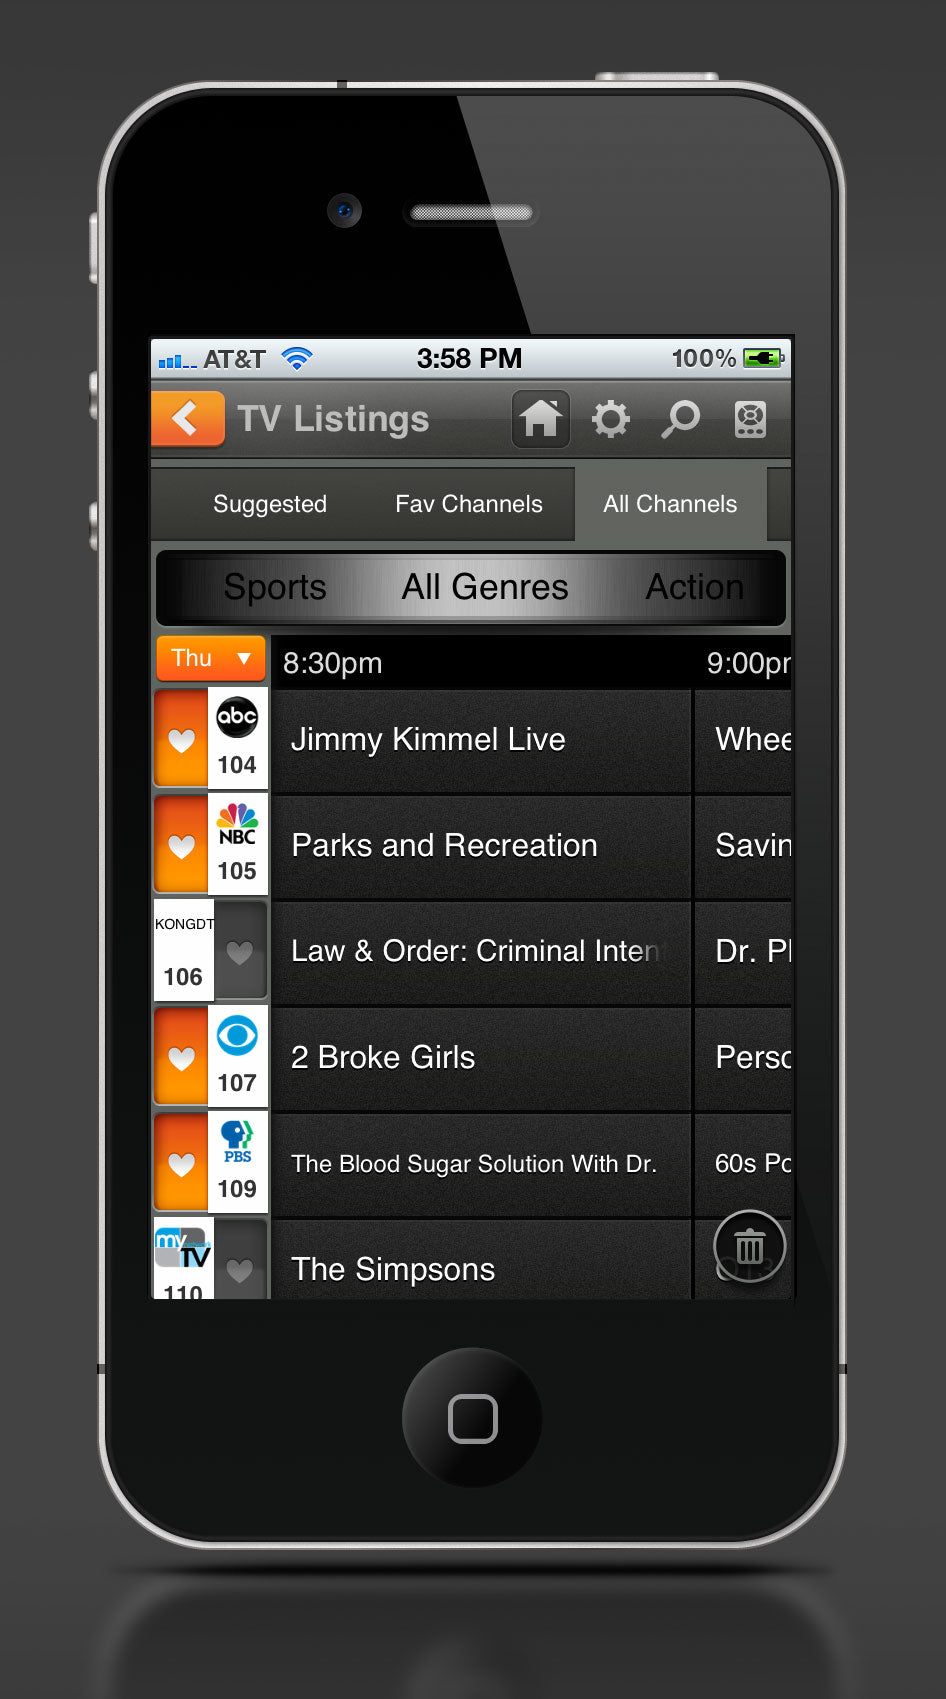 TV Listings UI design by Rick Murphy